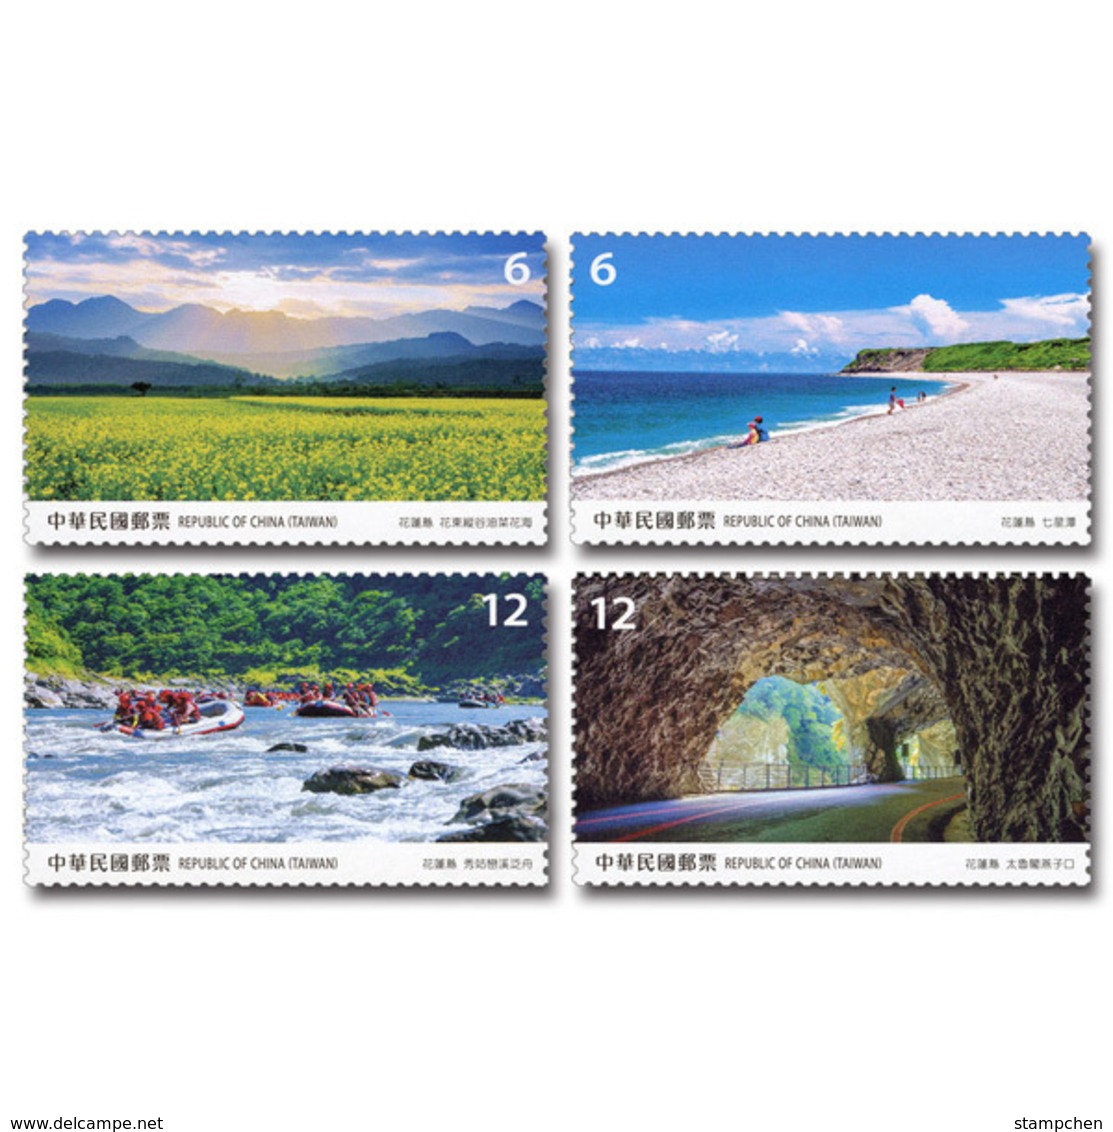 2019 Taiwan Scenery -Hualien Stamps Flower Blossom River Rafting Swallow Bird National Park - Other